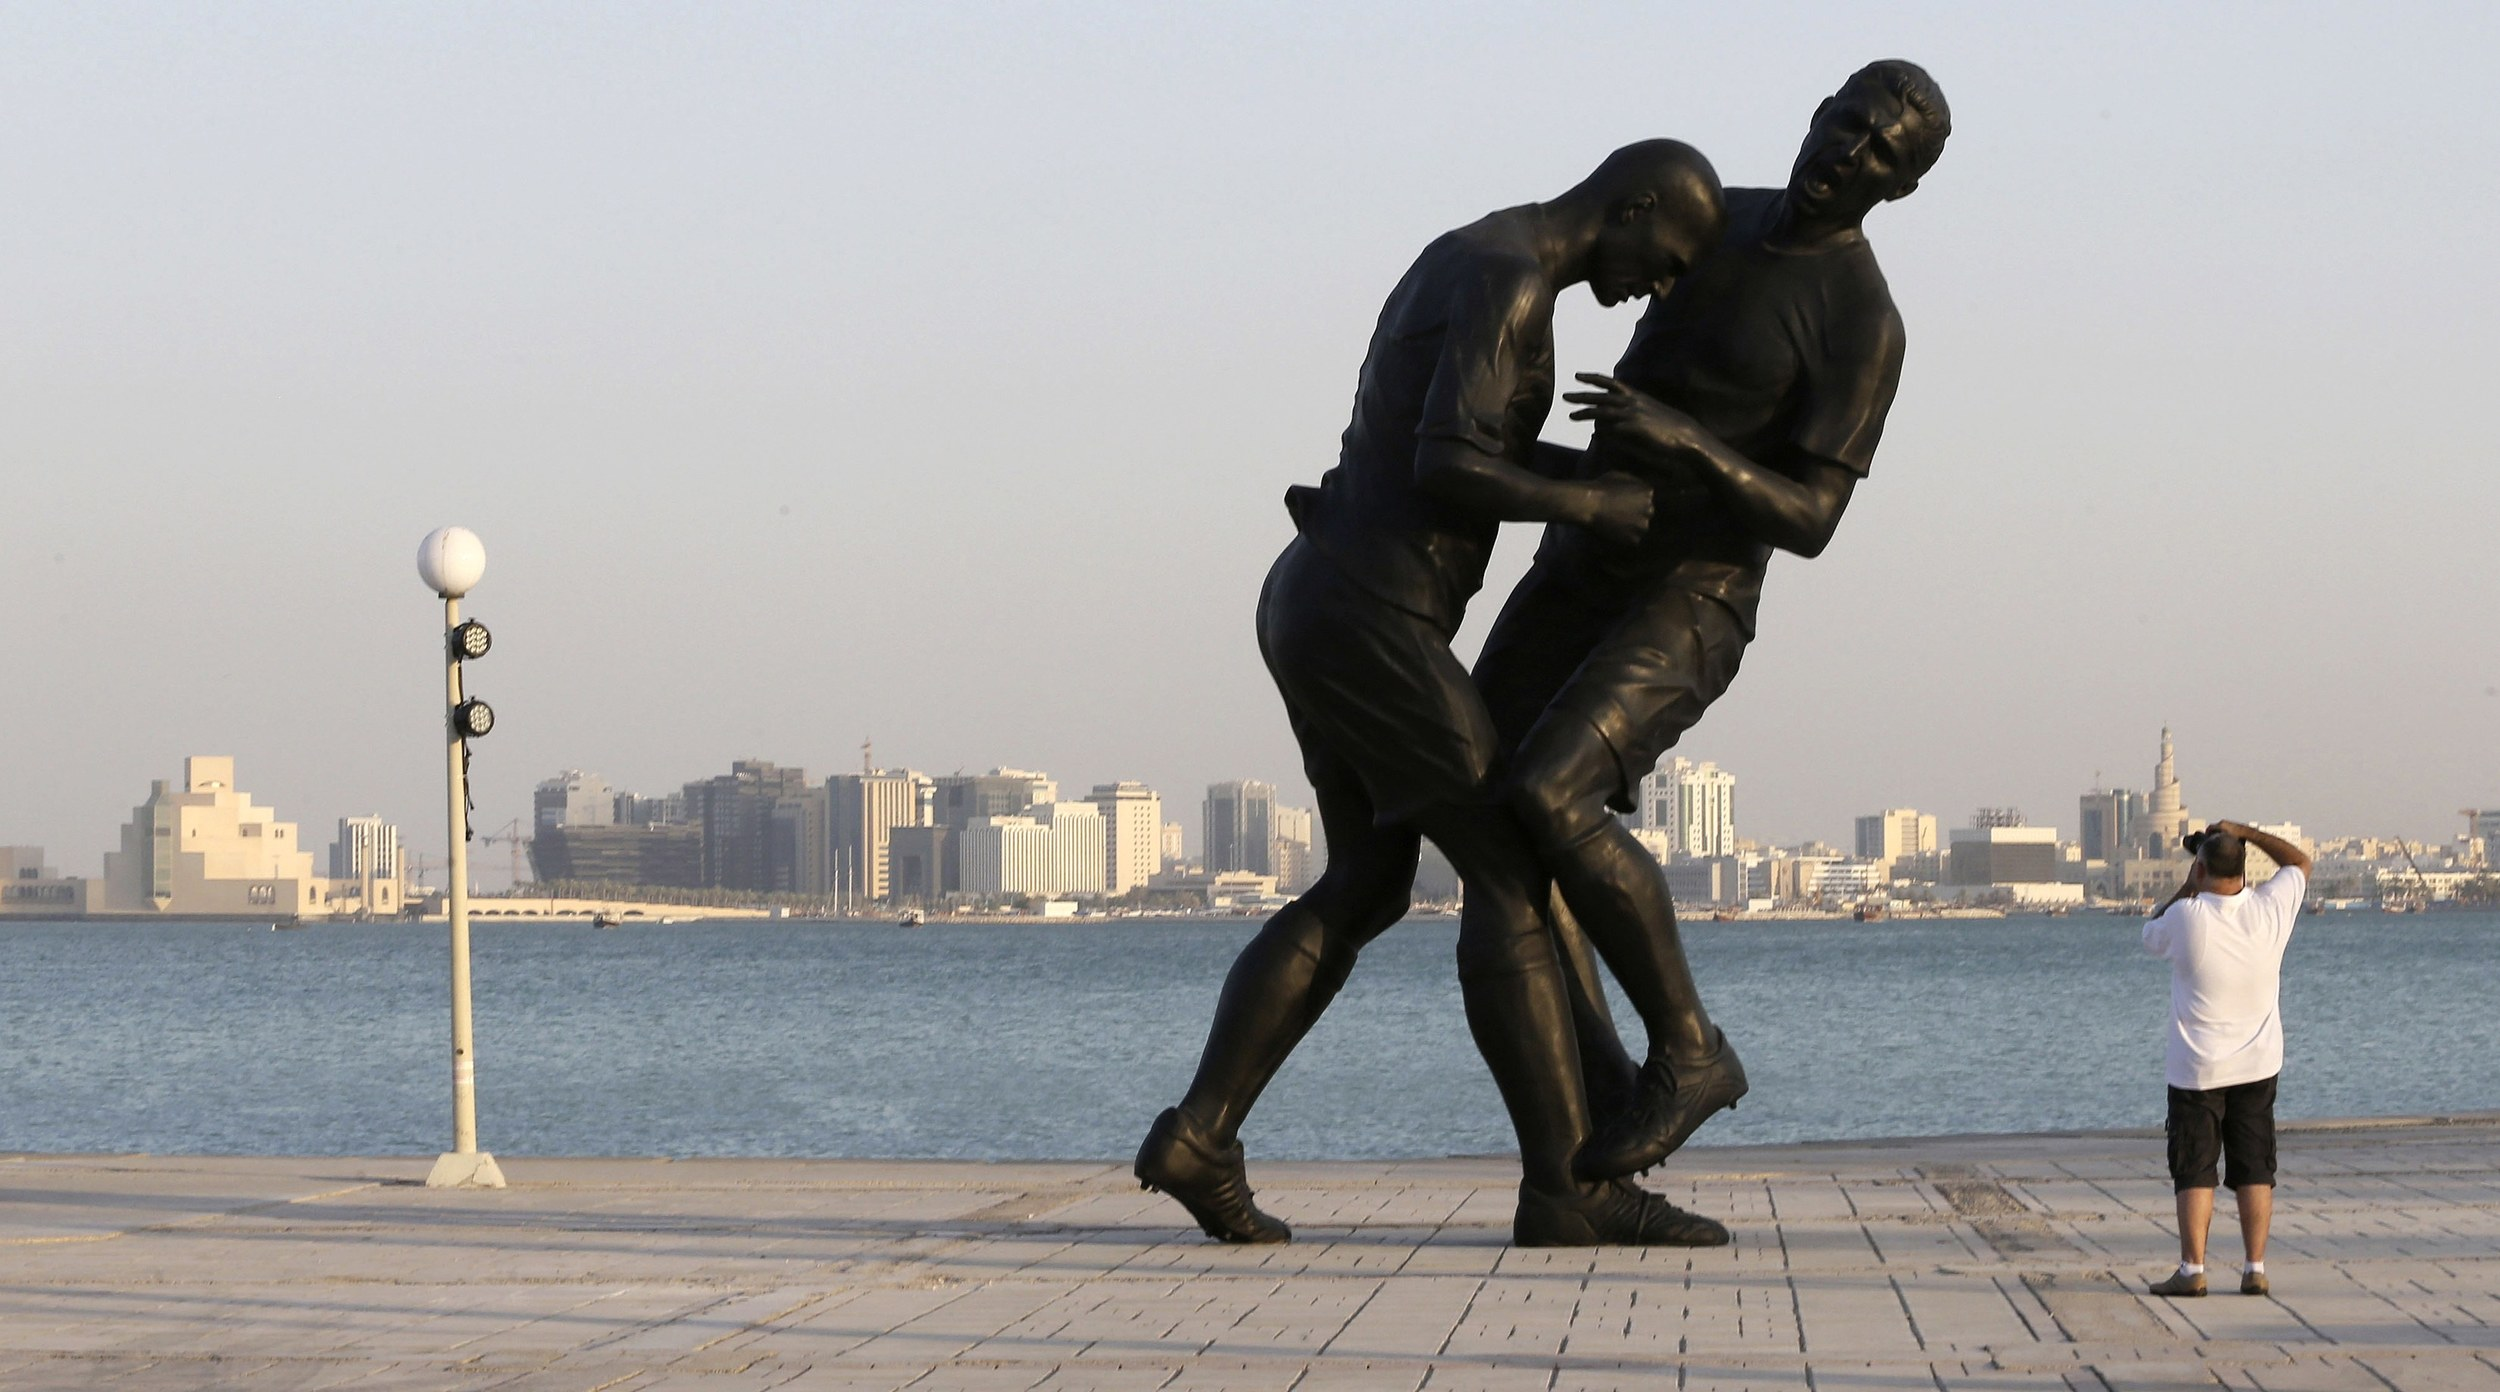 A man takes pictures of a bronze sculpture titled 'Coup de Tete' by Algerian-born French artist Adel Abdessemed during its installation on the Corniche in Doha October 7, 2013. The sculpture, which was bought by the Qatar Museums Authority, was removed on October 28, 2013 after generating criticism from religious conservatives, according to local media. The art work portrays French footballer Zinedine Zidane headbutting Italian player Marco Materazzi during the 2006 World Cup. Image supplied by Action Images